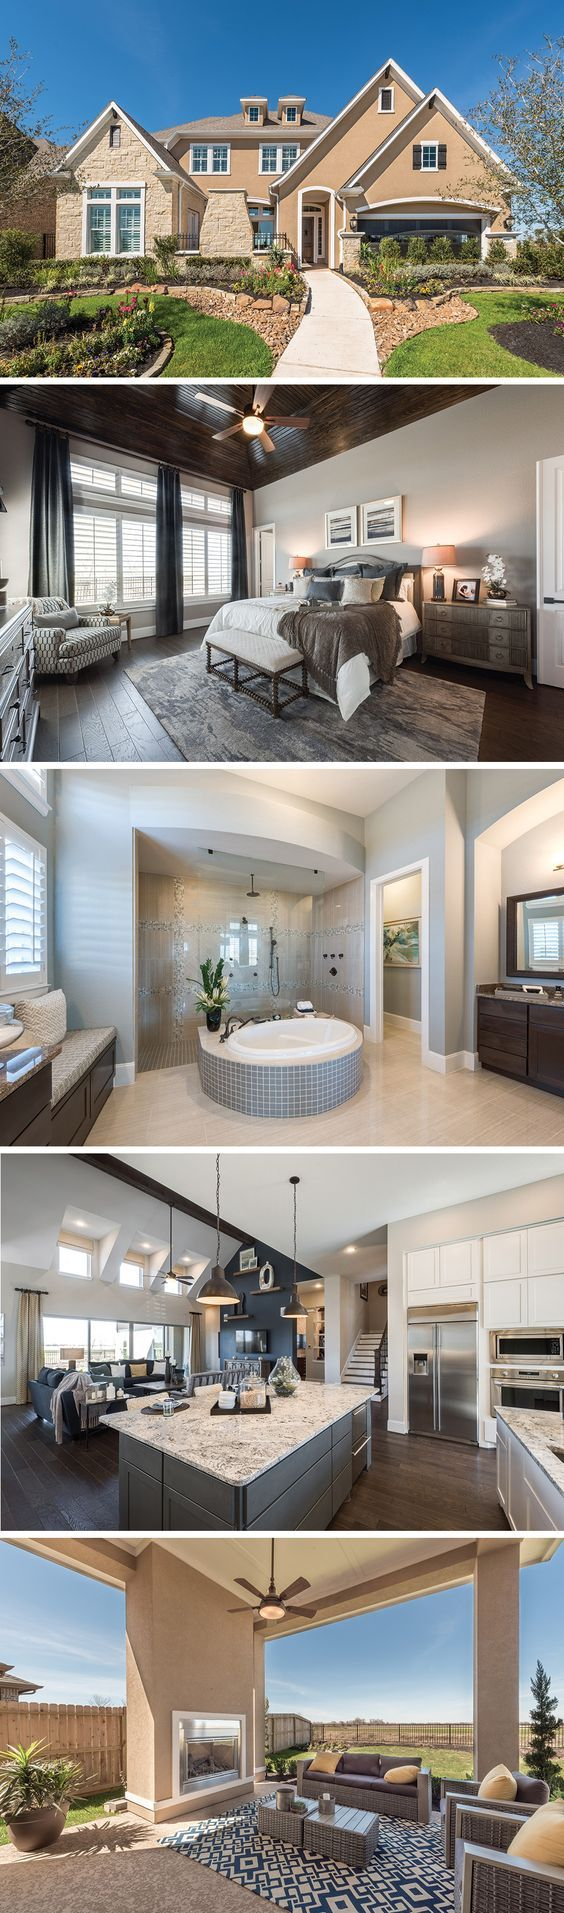 Kitchen Family Room Layouts best 25+ family room layouts ideas that you will like on pinterest